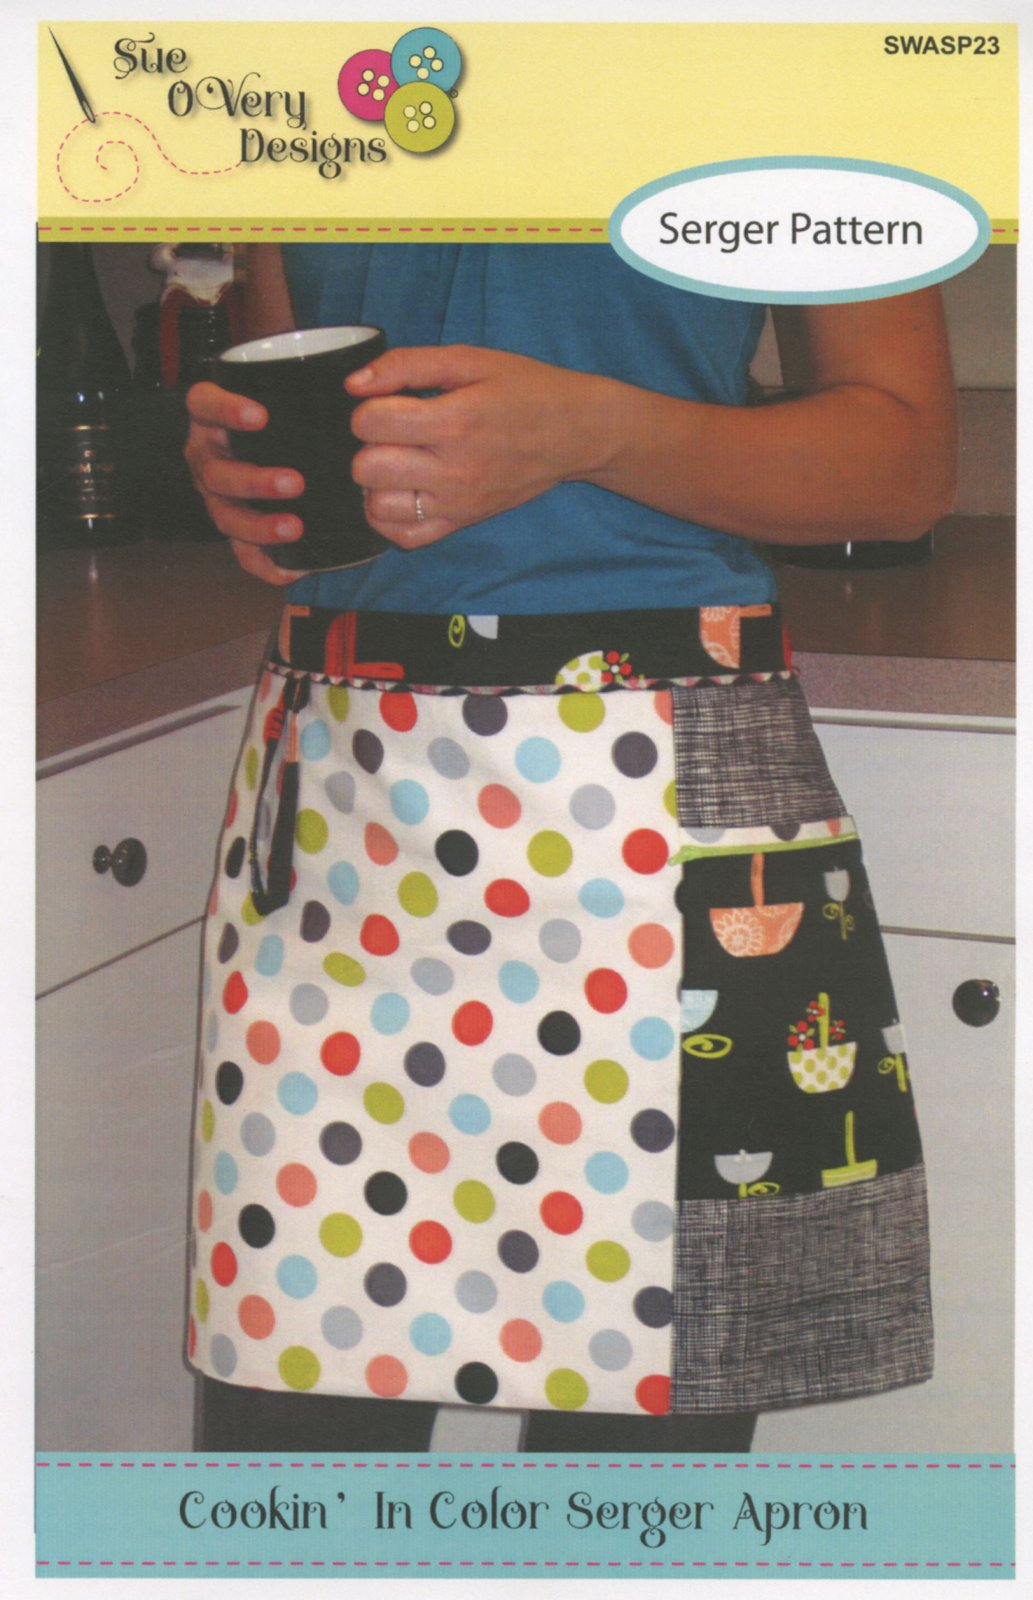 Cookin In Color Serger Apron